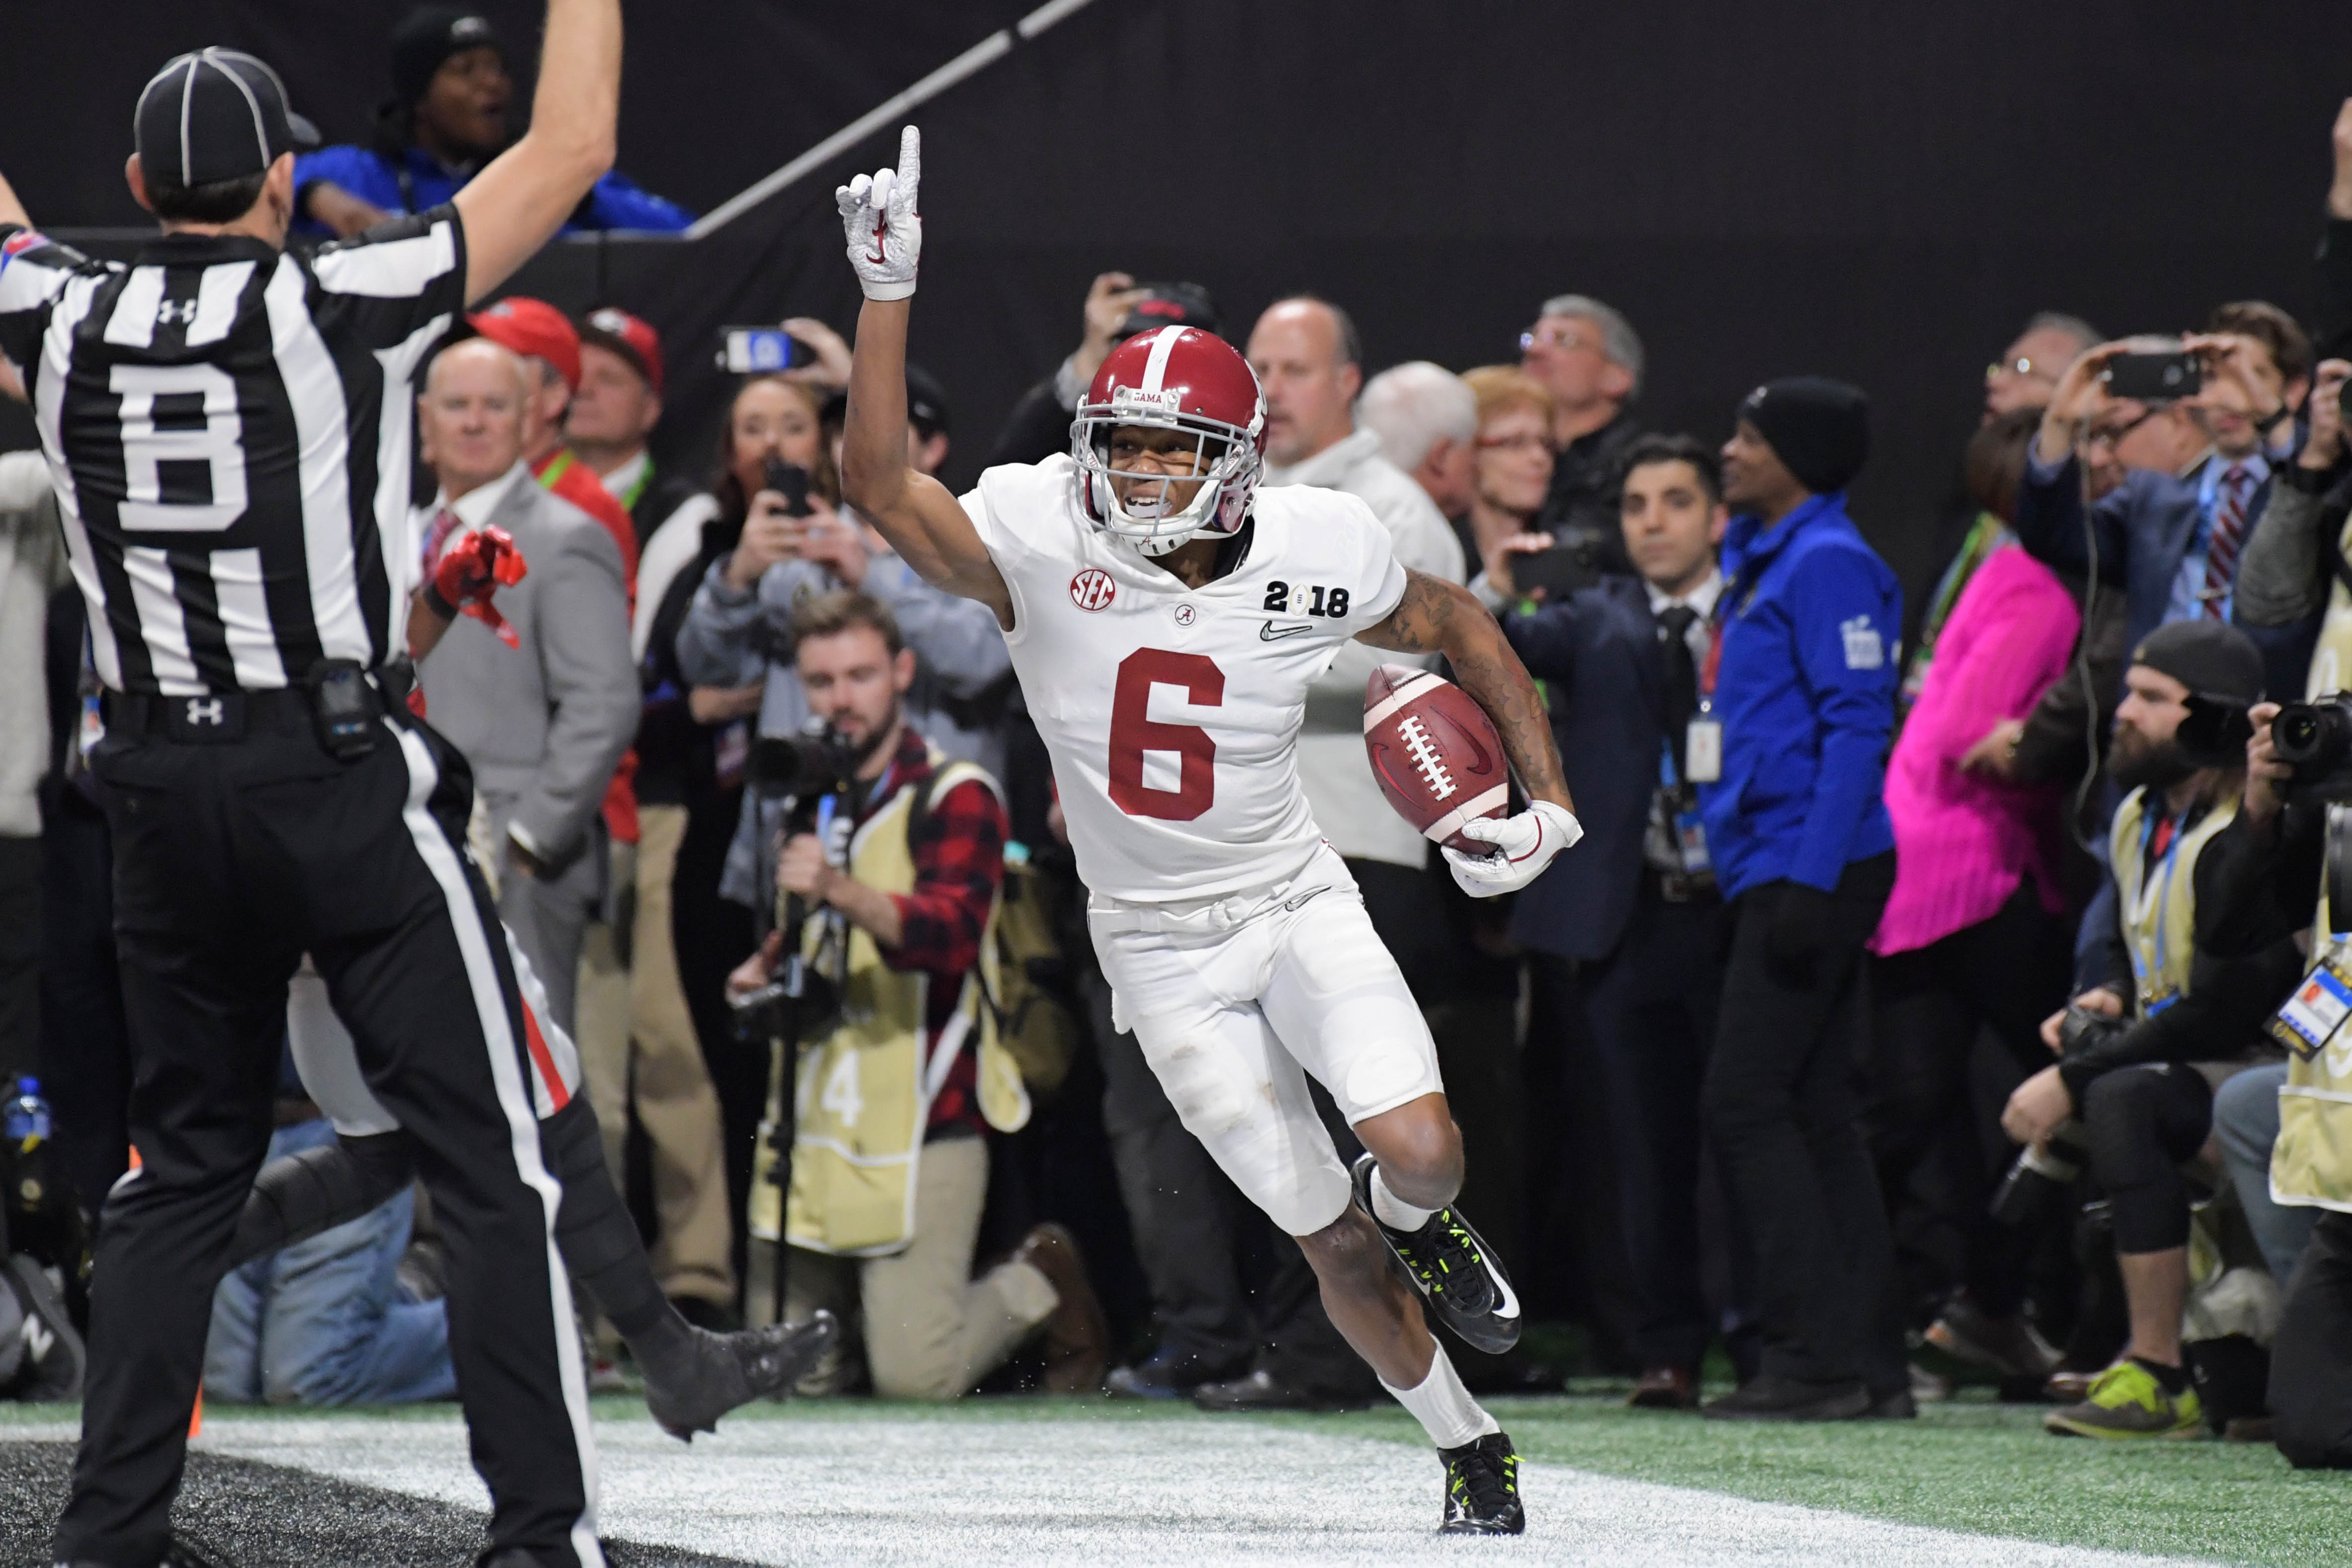 Kings of Confetti: Alabama celebrates national title No. 17